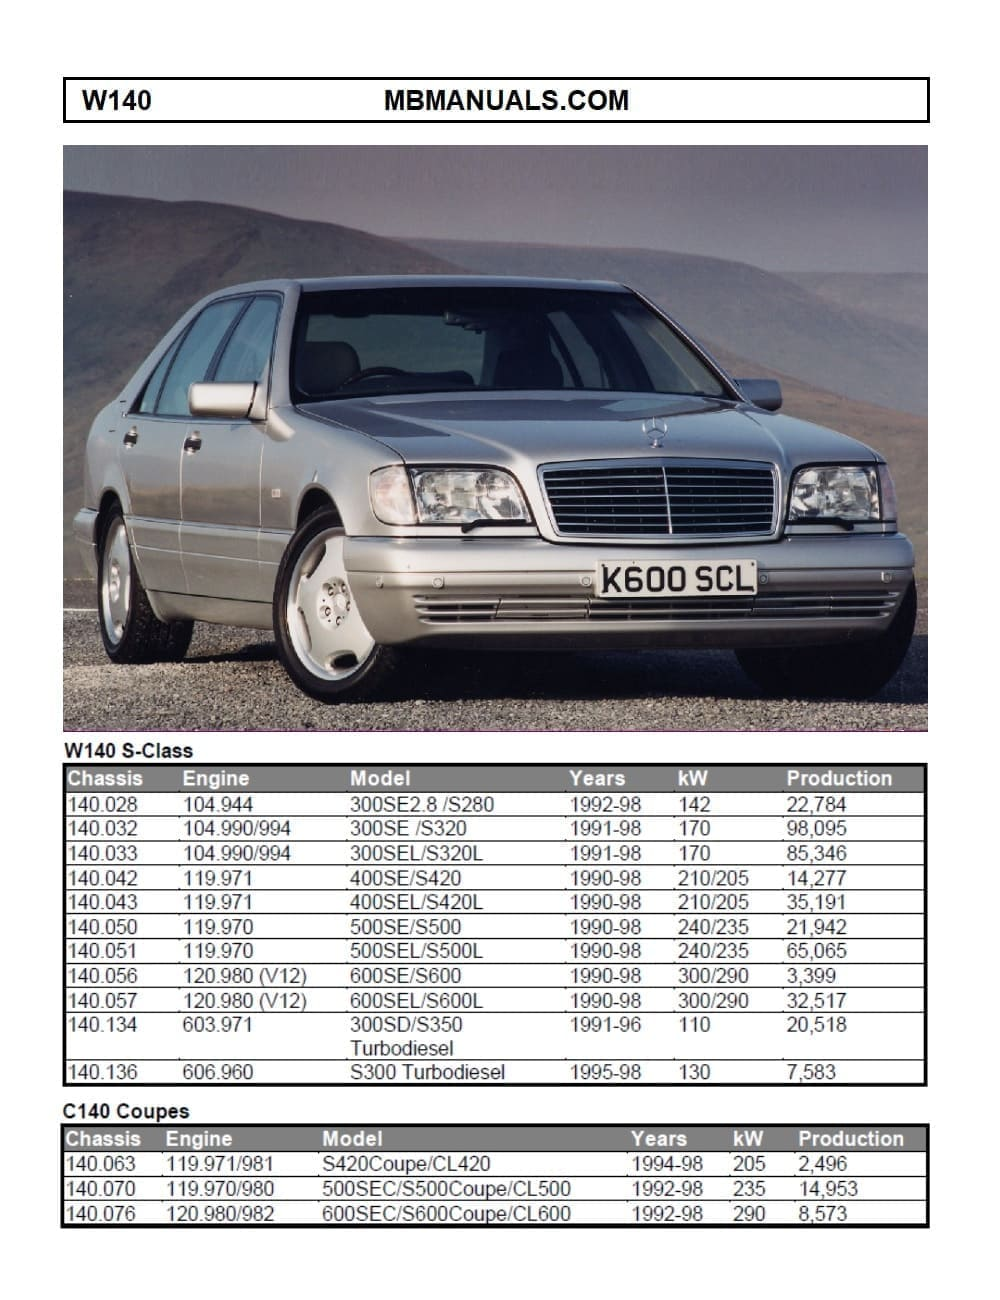 Mercedes Benz 140 W140 Service Repair Manuals on mercury wiring diagram, mercedes timing marks, nissan wiring diagram, mercedes firing order, dayton wiring diagram, mercedes wire color codes, freightliner wiring diagram, dodge wiring diagram, chevrolet wiring diagram, toyota wiring diagram, honda wiring diagram, naza wiring diagram, mercedes electrical diagrams, taylor wiring diagram, mercedes-benz diagram, kia wiring diagram, vw wiring diagram, mercedes wiring color, mercedes speedometer, international wiring diagram,